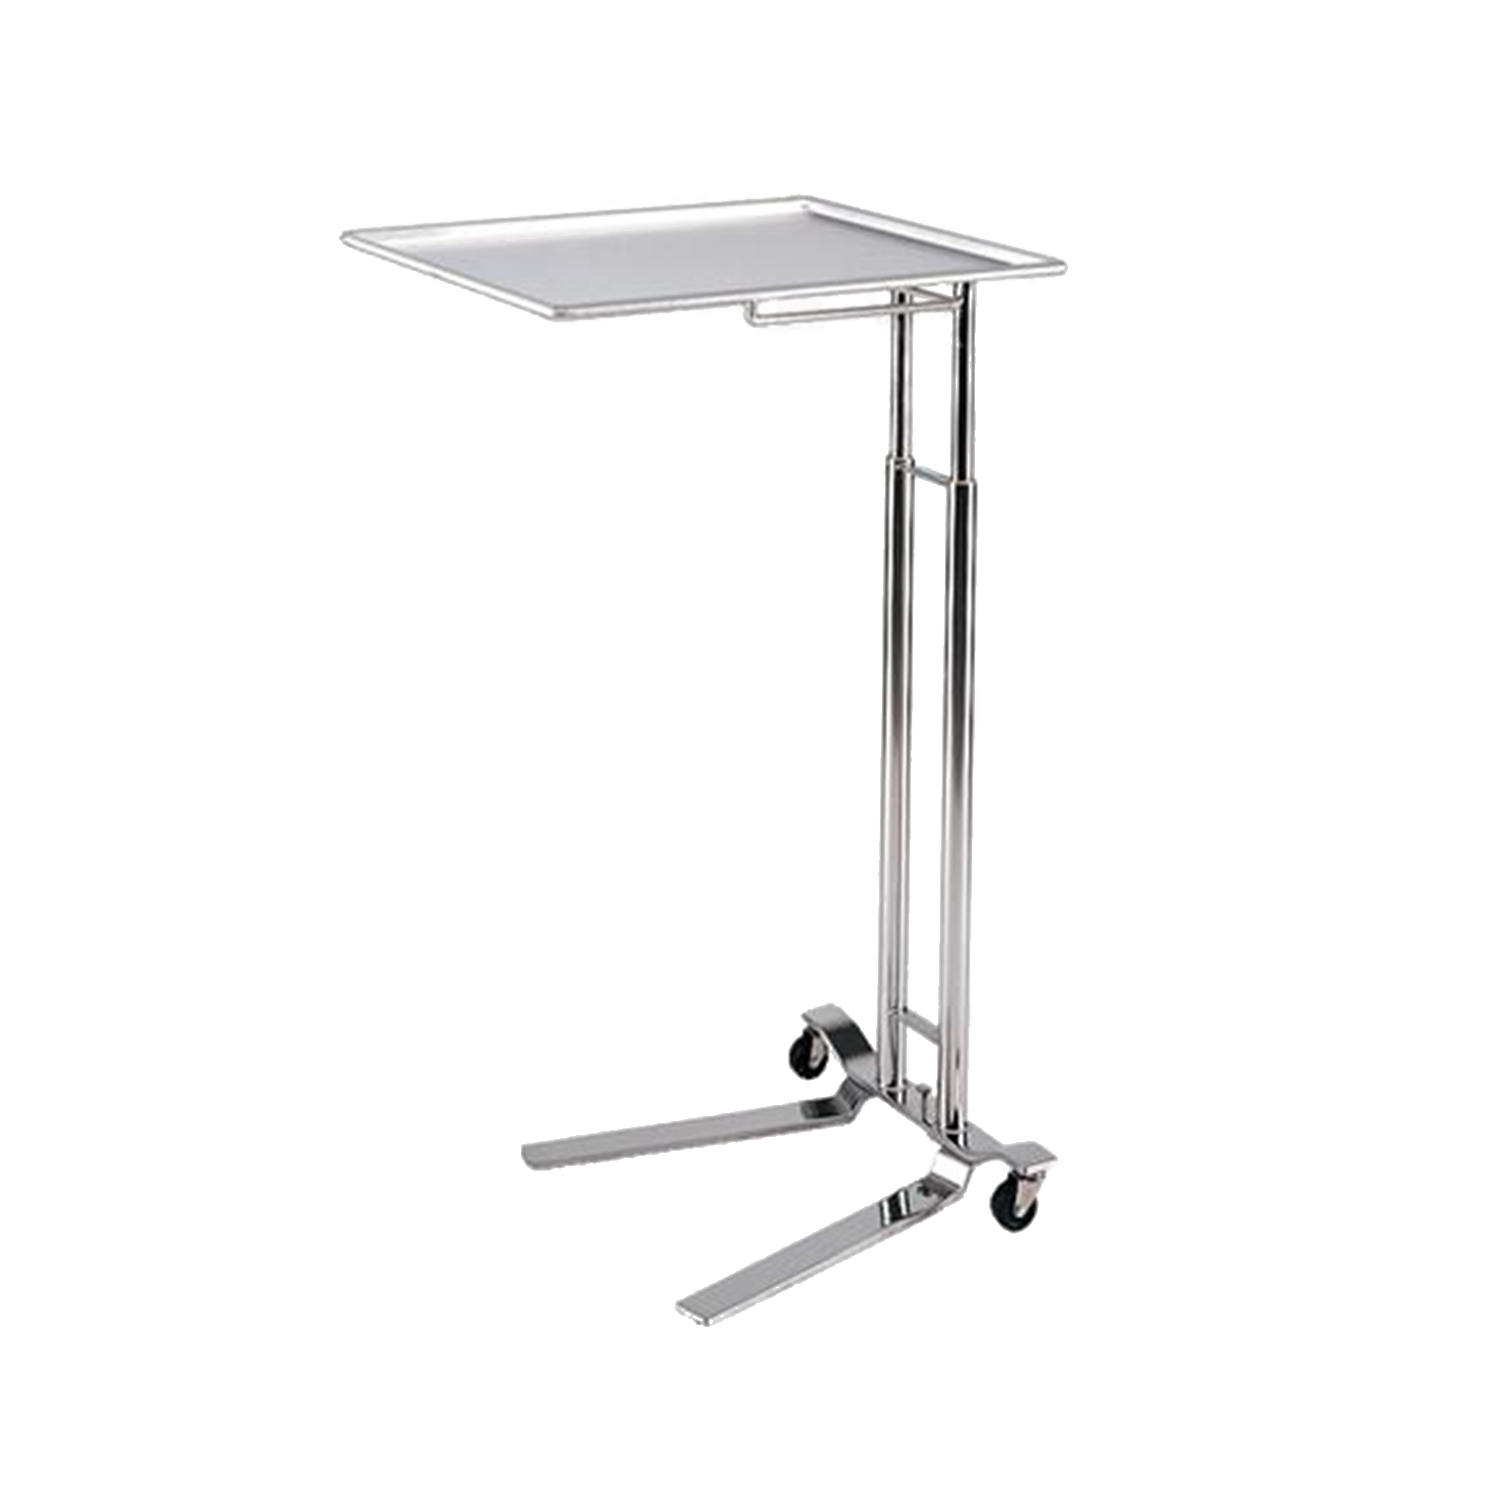 Pedigo 1068 Foot Operated Stainless Steel Mayo Stand